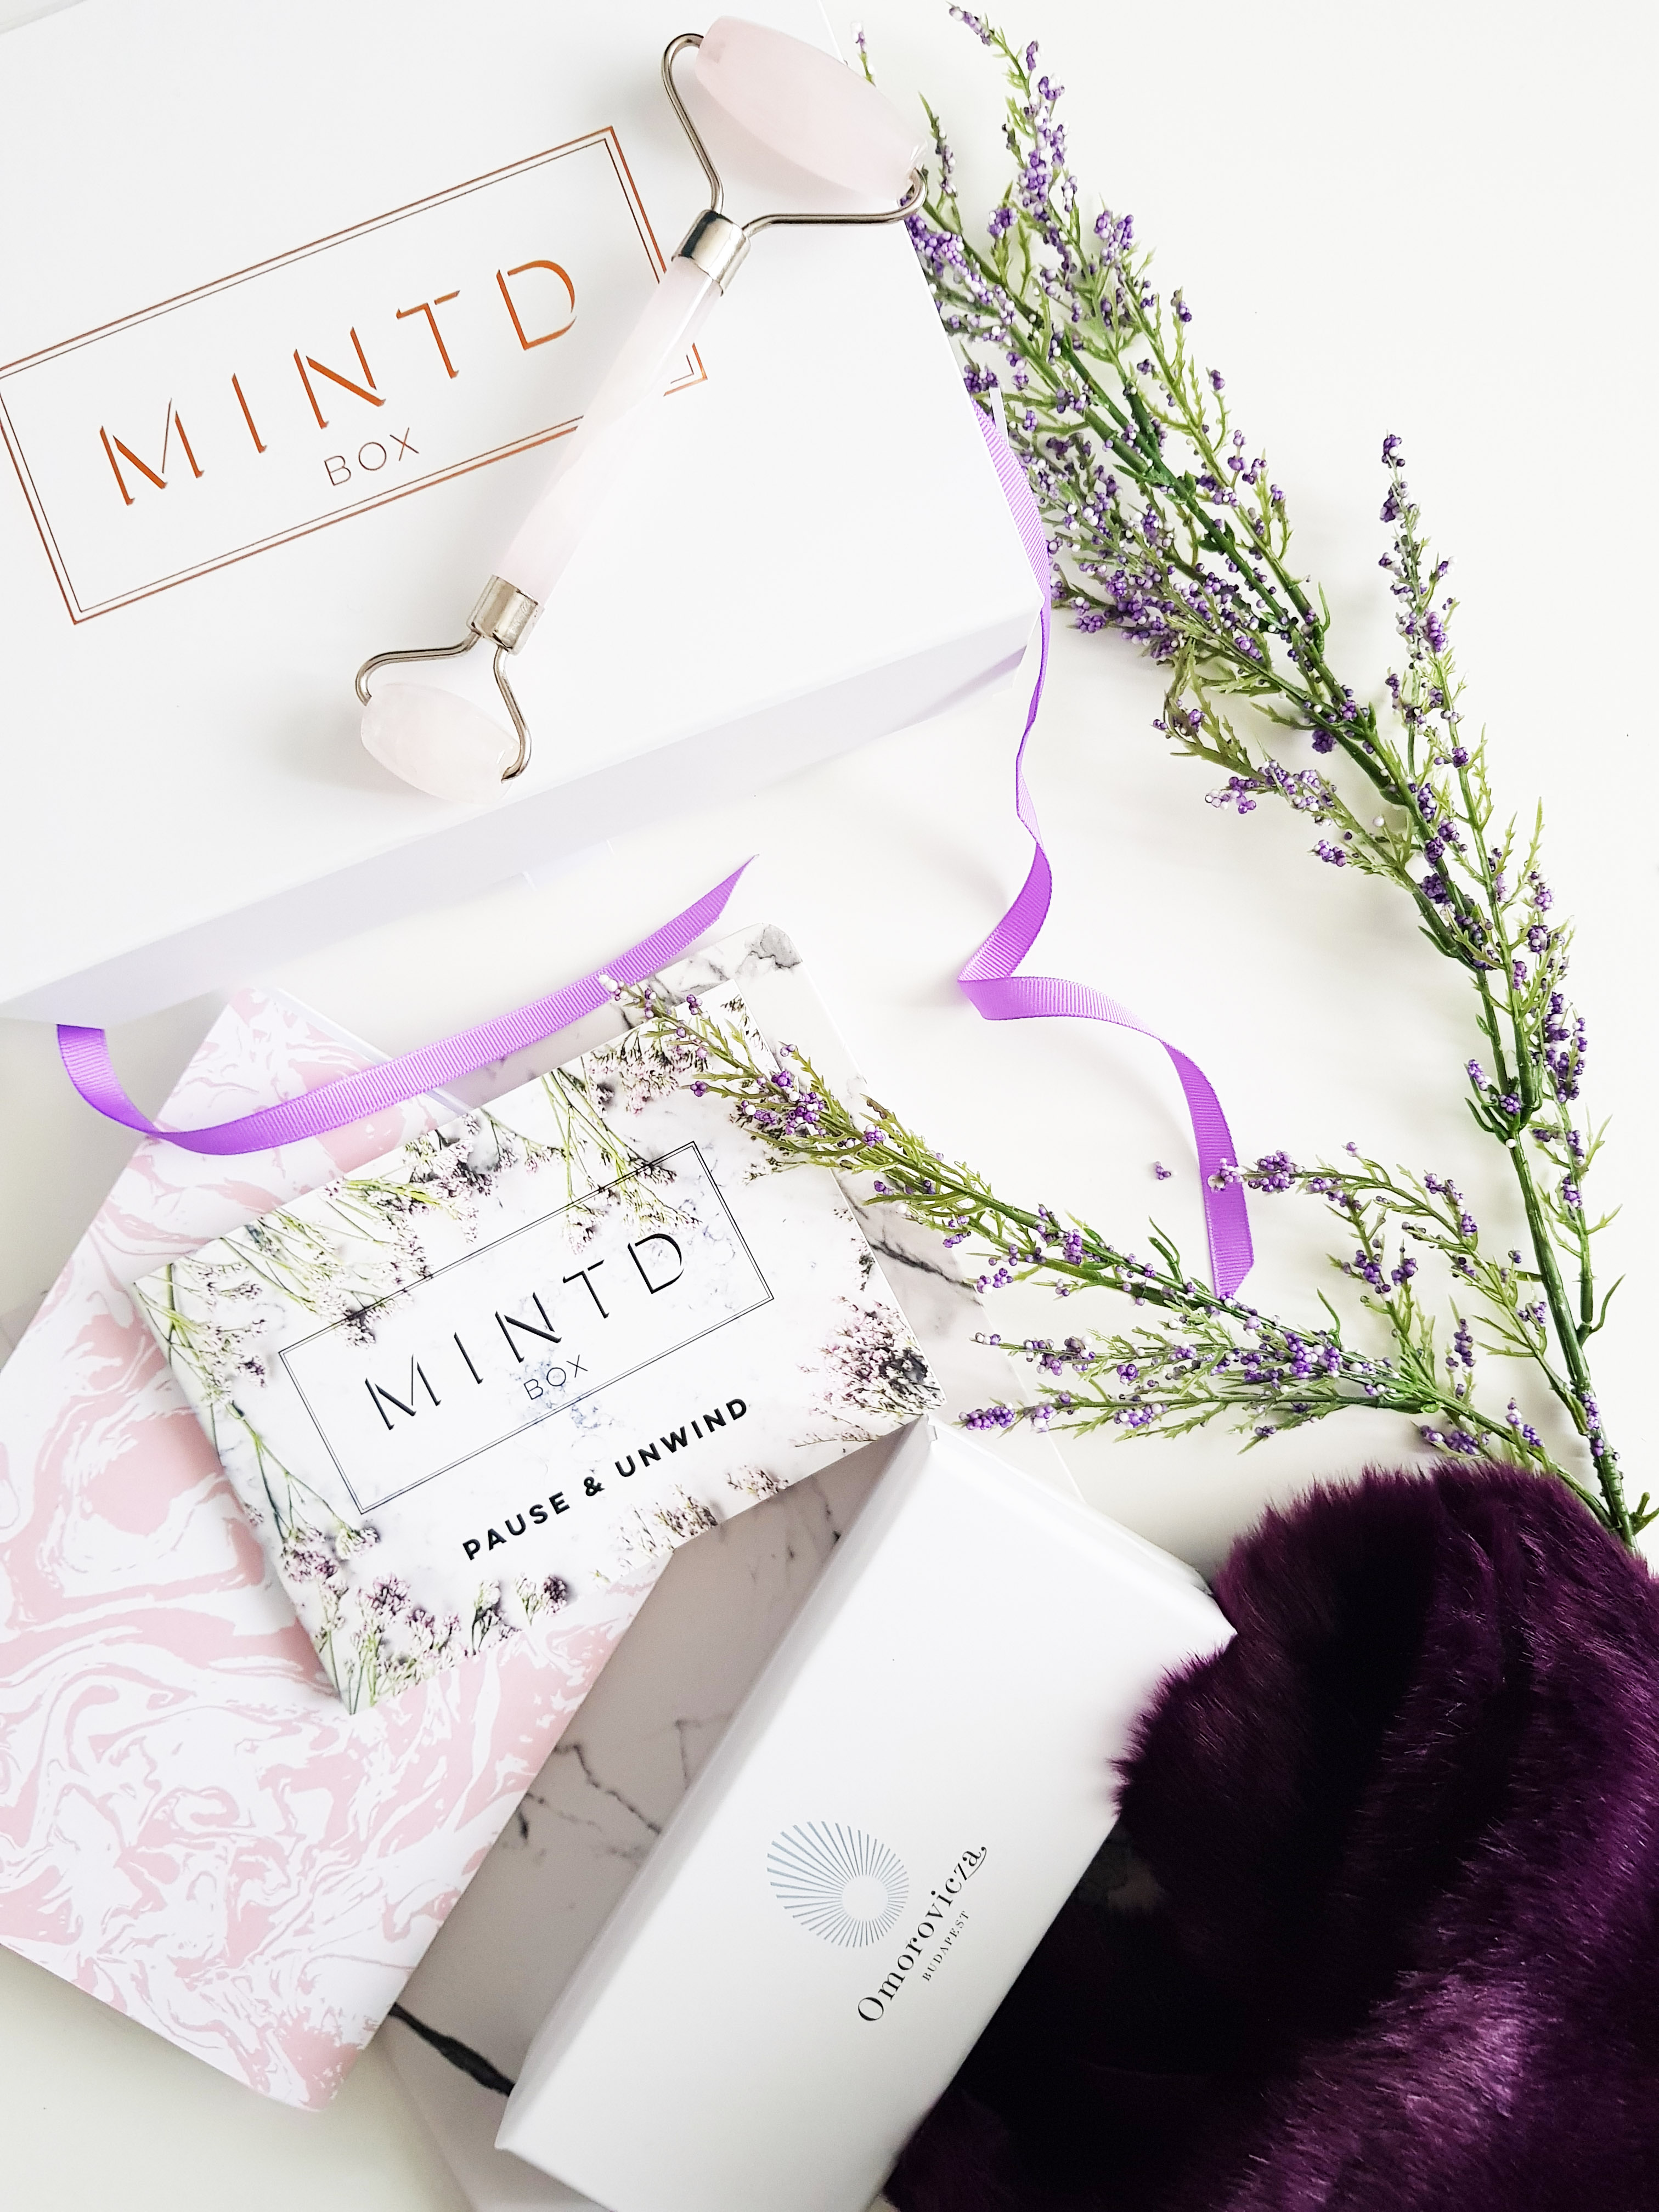 Mintd Box - Omorovicza Rose Quartz roller - Luxury Beauty Subscription Box